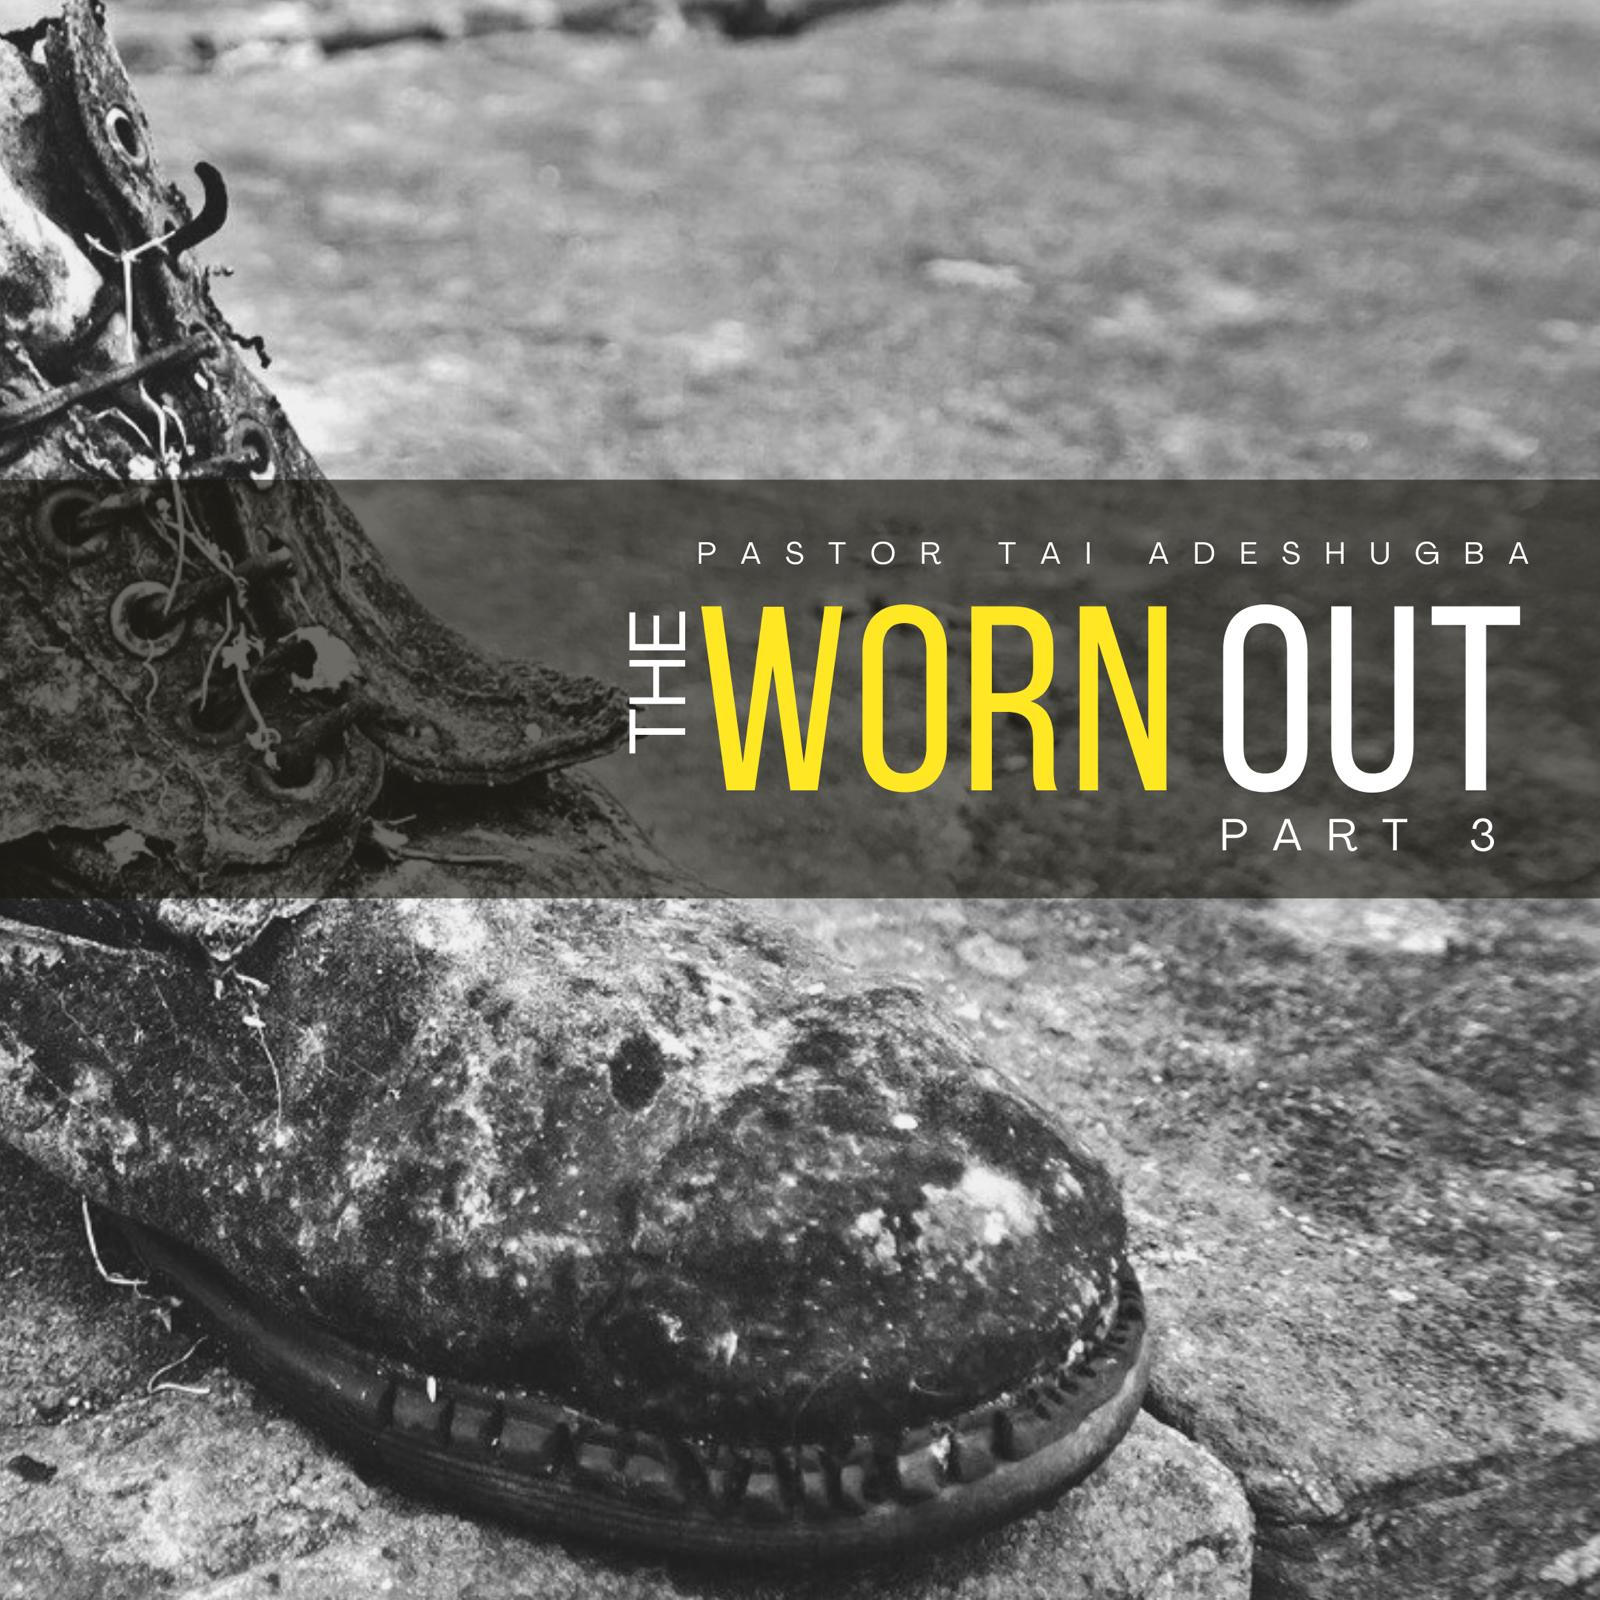 The Worn Out (Part 3)